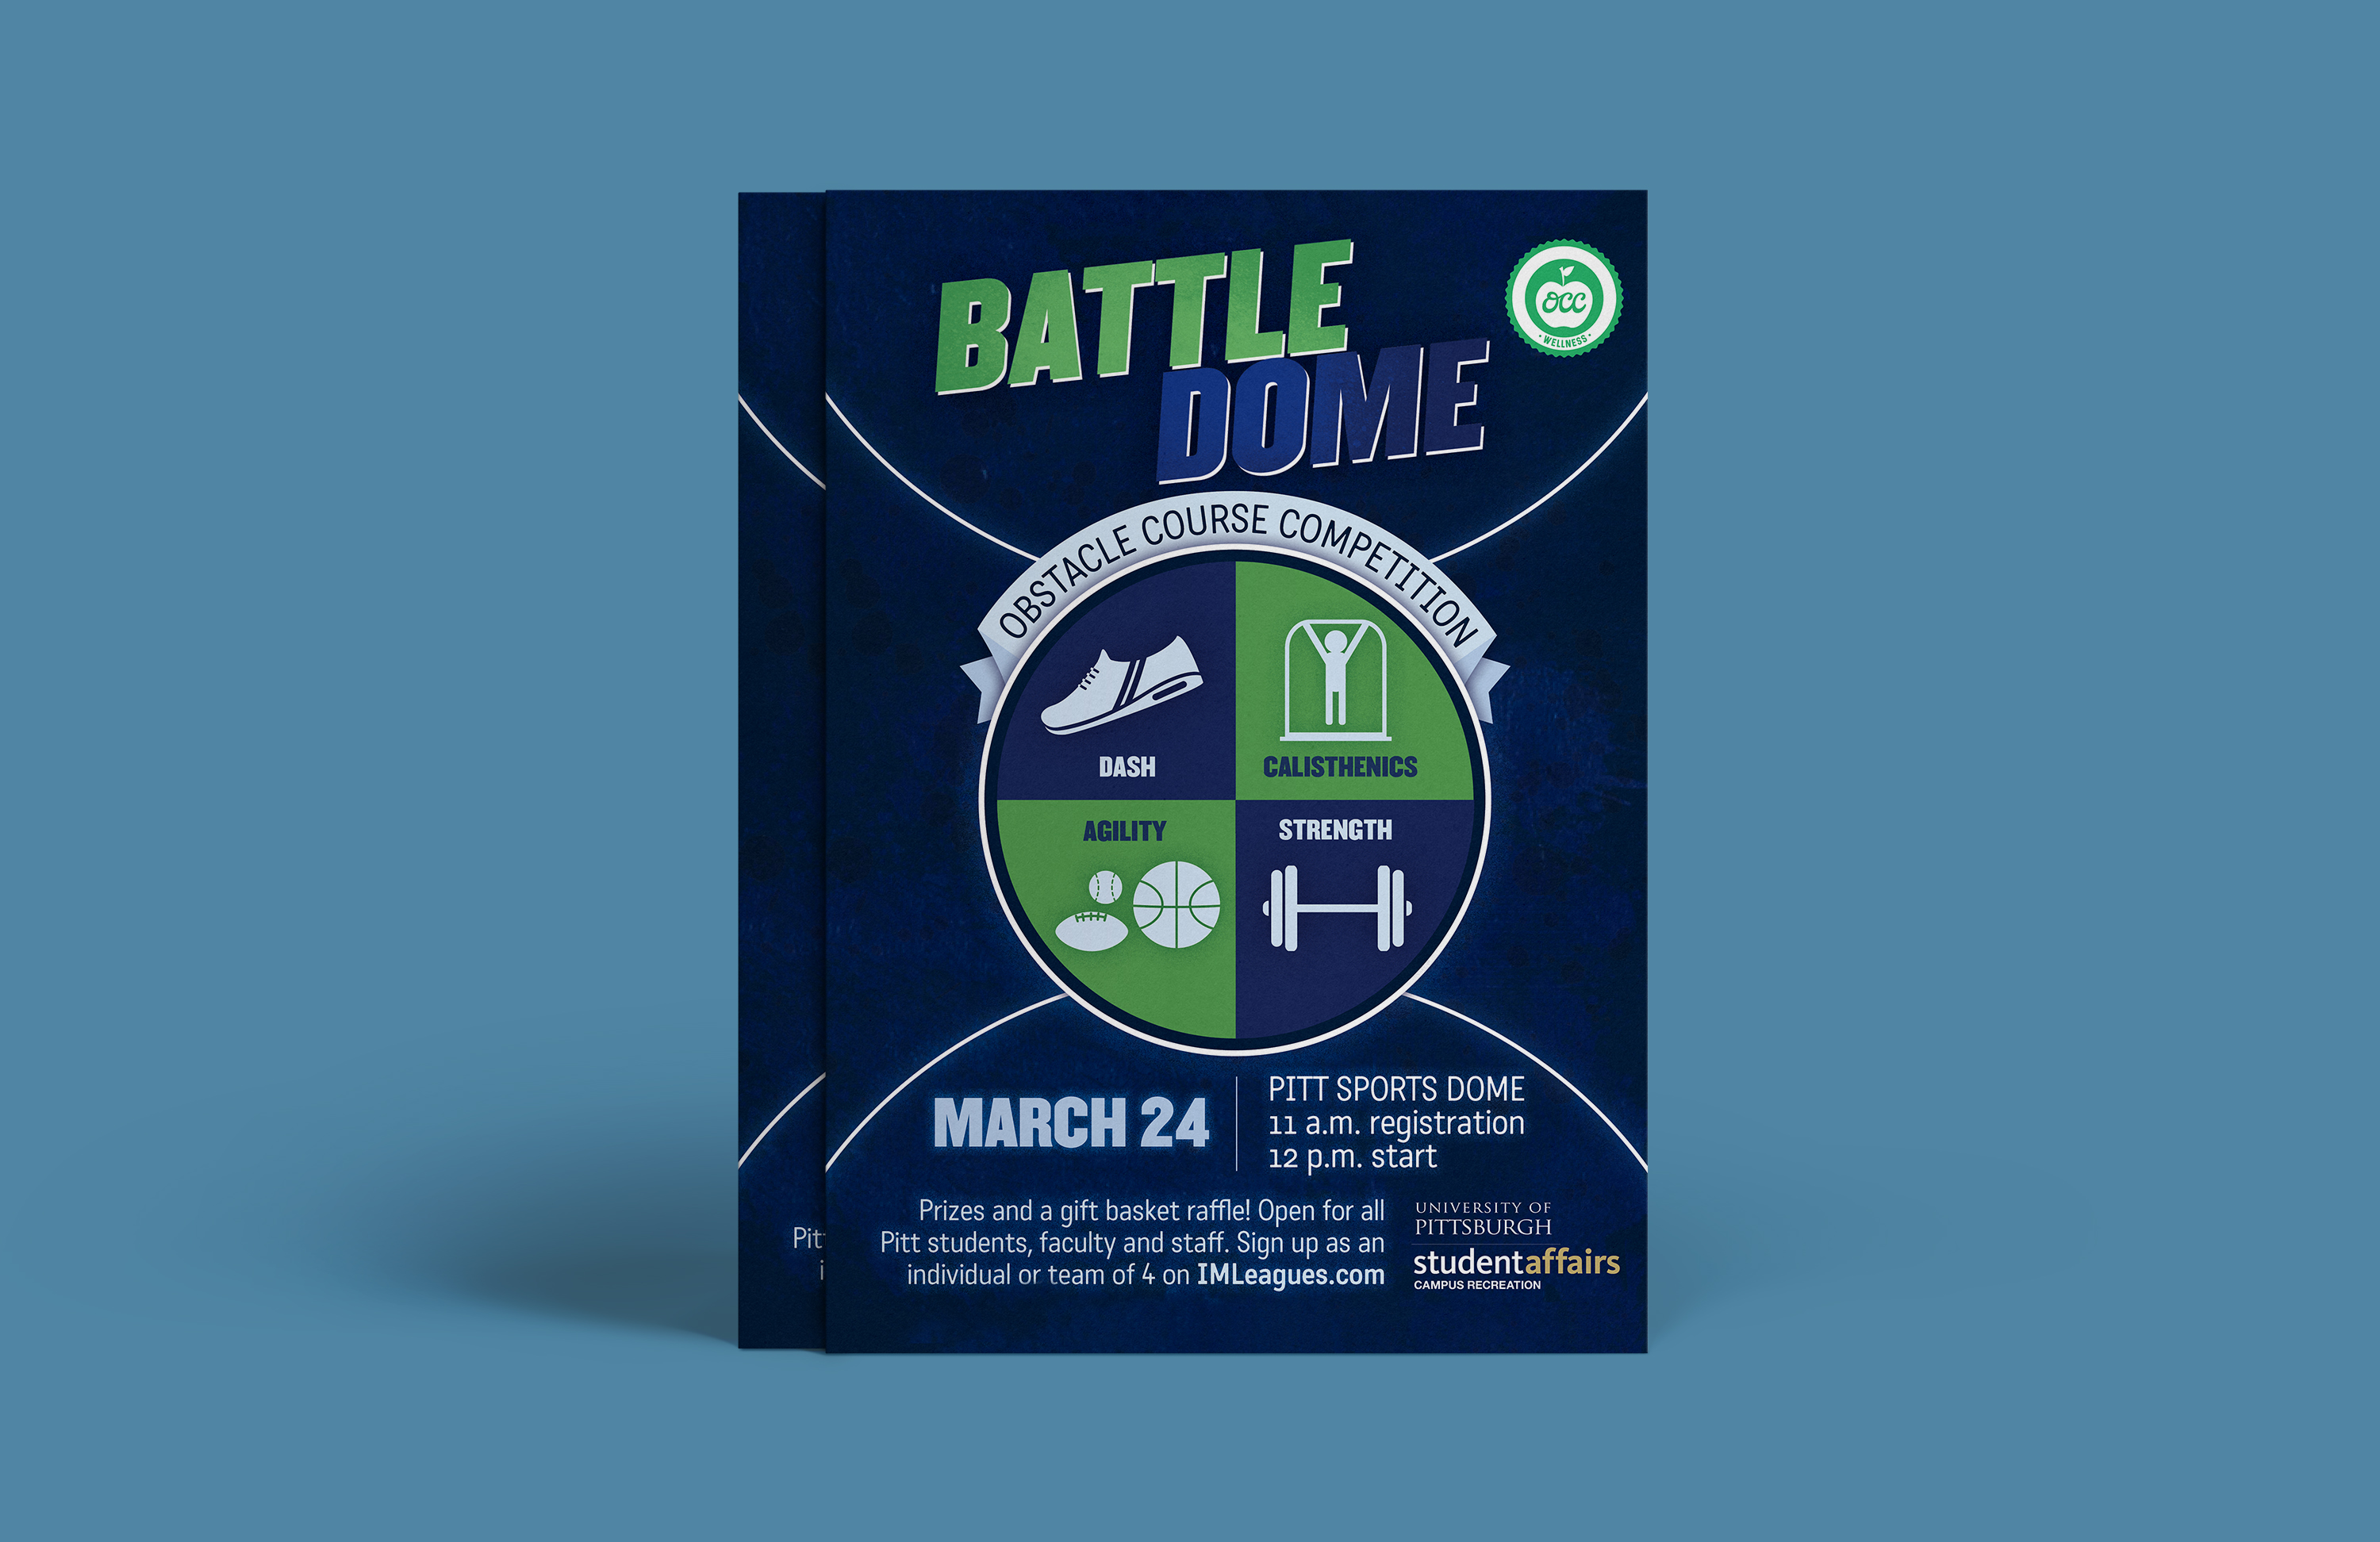 A mockup of a poster over a blue background. The poster served as an ad for a student triathlon-type event. The design features a textured, dark blue background with white arcs that resemble the lines on a basketball court. There is also a large circular graphic in the center with icons over a blue and green background which represent each event - dash, calisthenics, agility, and strength.